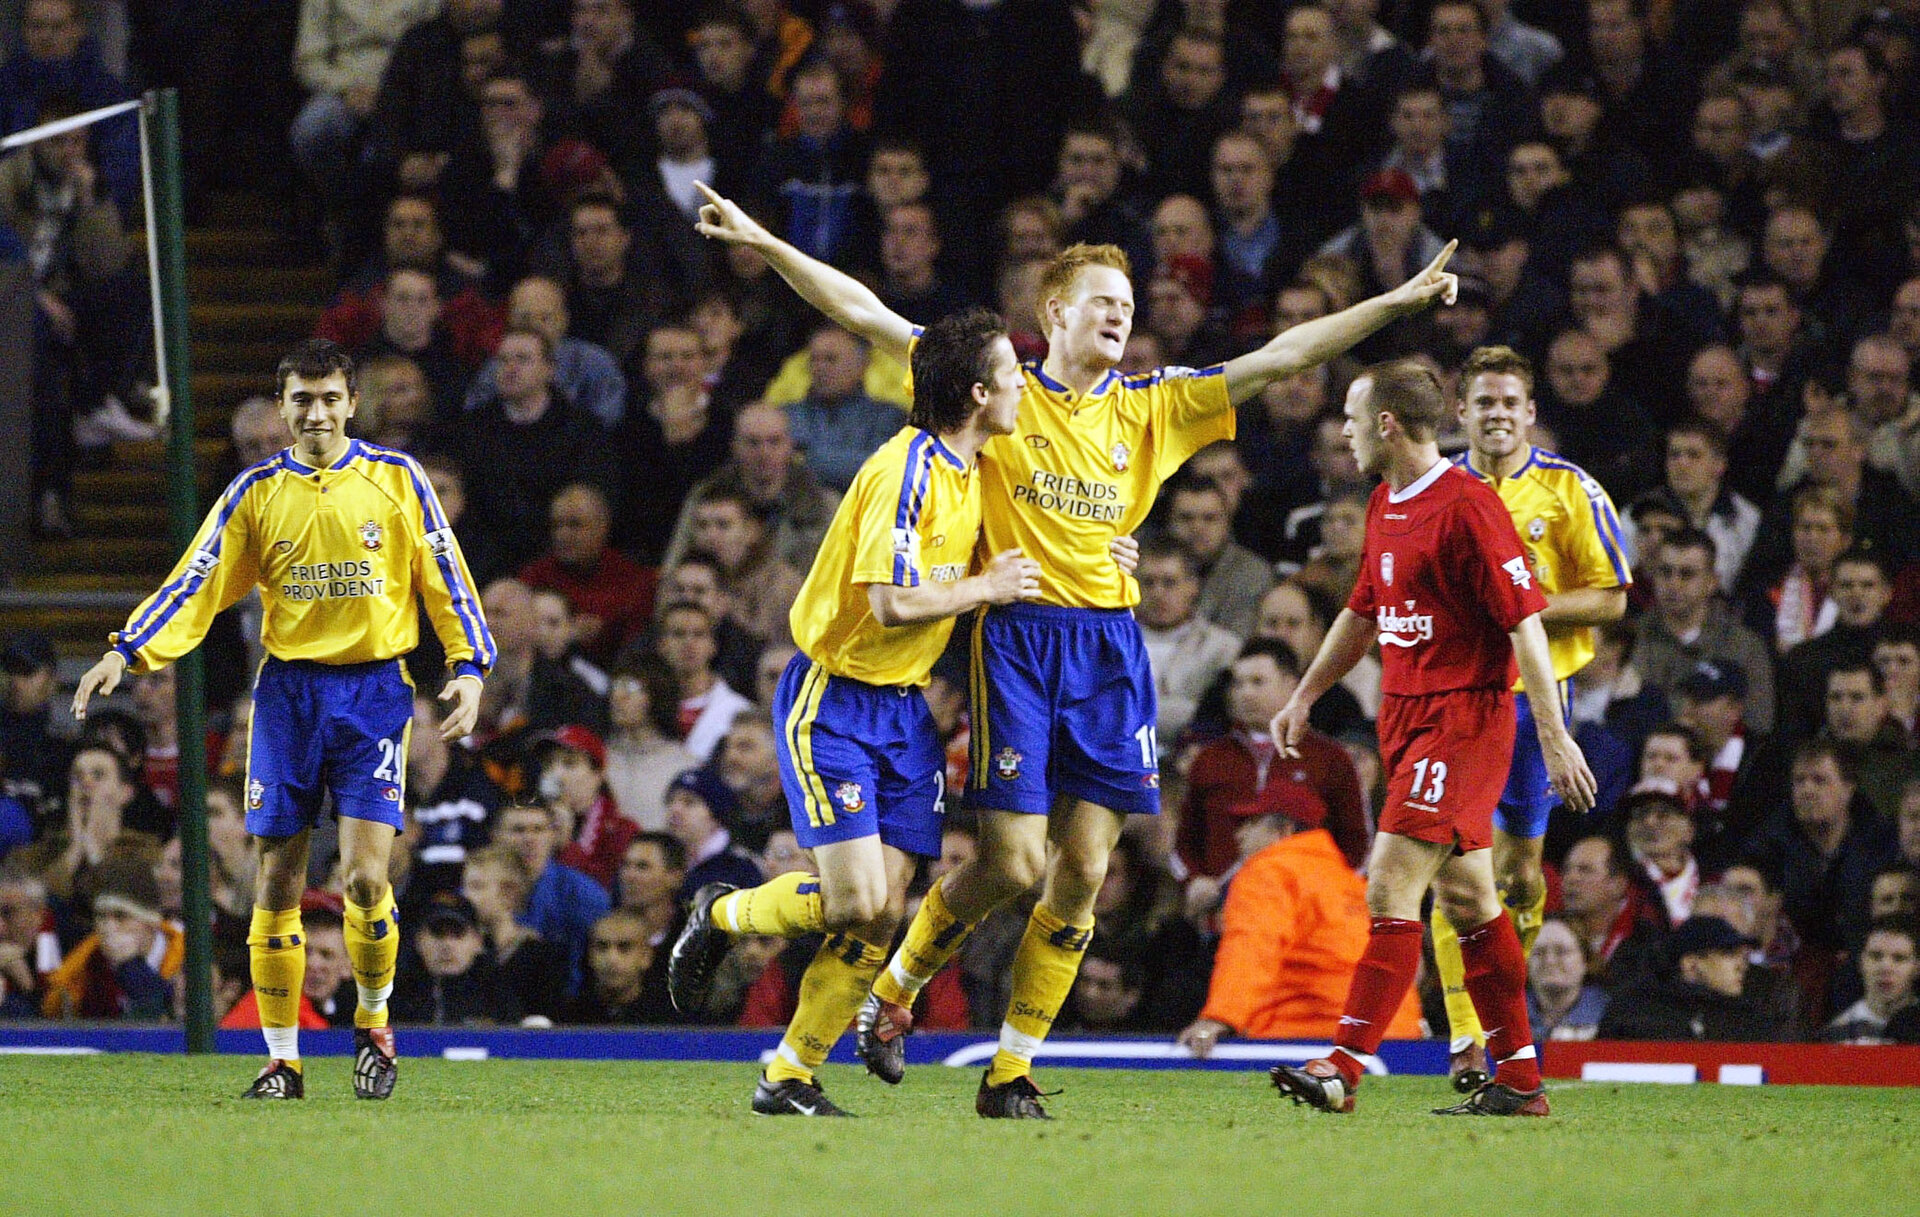 LIVERPOOL, ENGLAND - DECEMBER 13: Michael Svensson of Southampton celebrates scoring during the FA Barclaycard Premiership match between Liverpool and Southampton at Anfield on December 13, 2003 in Liverpool, England.  (Photo by Gary M.Prior/Getty Images)